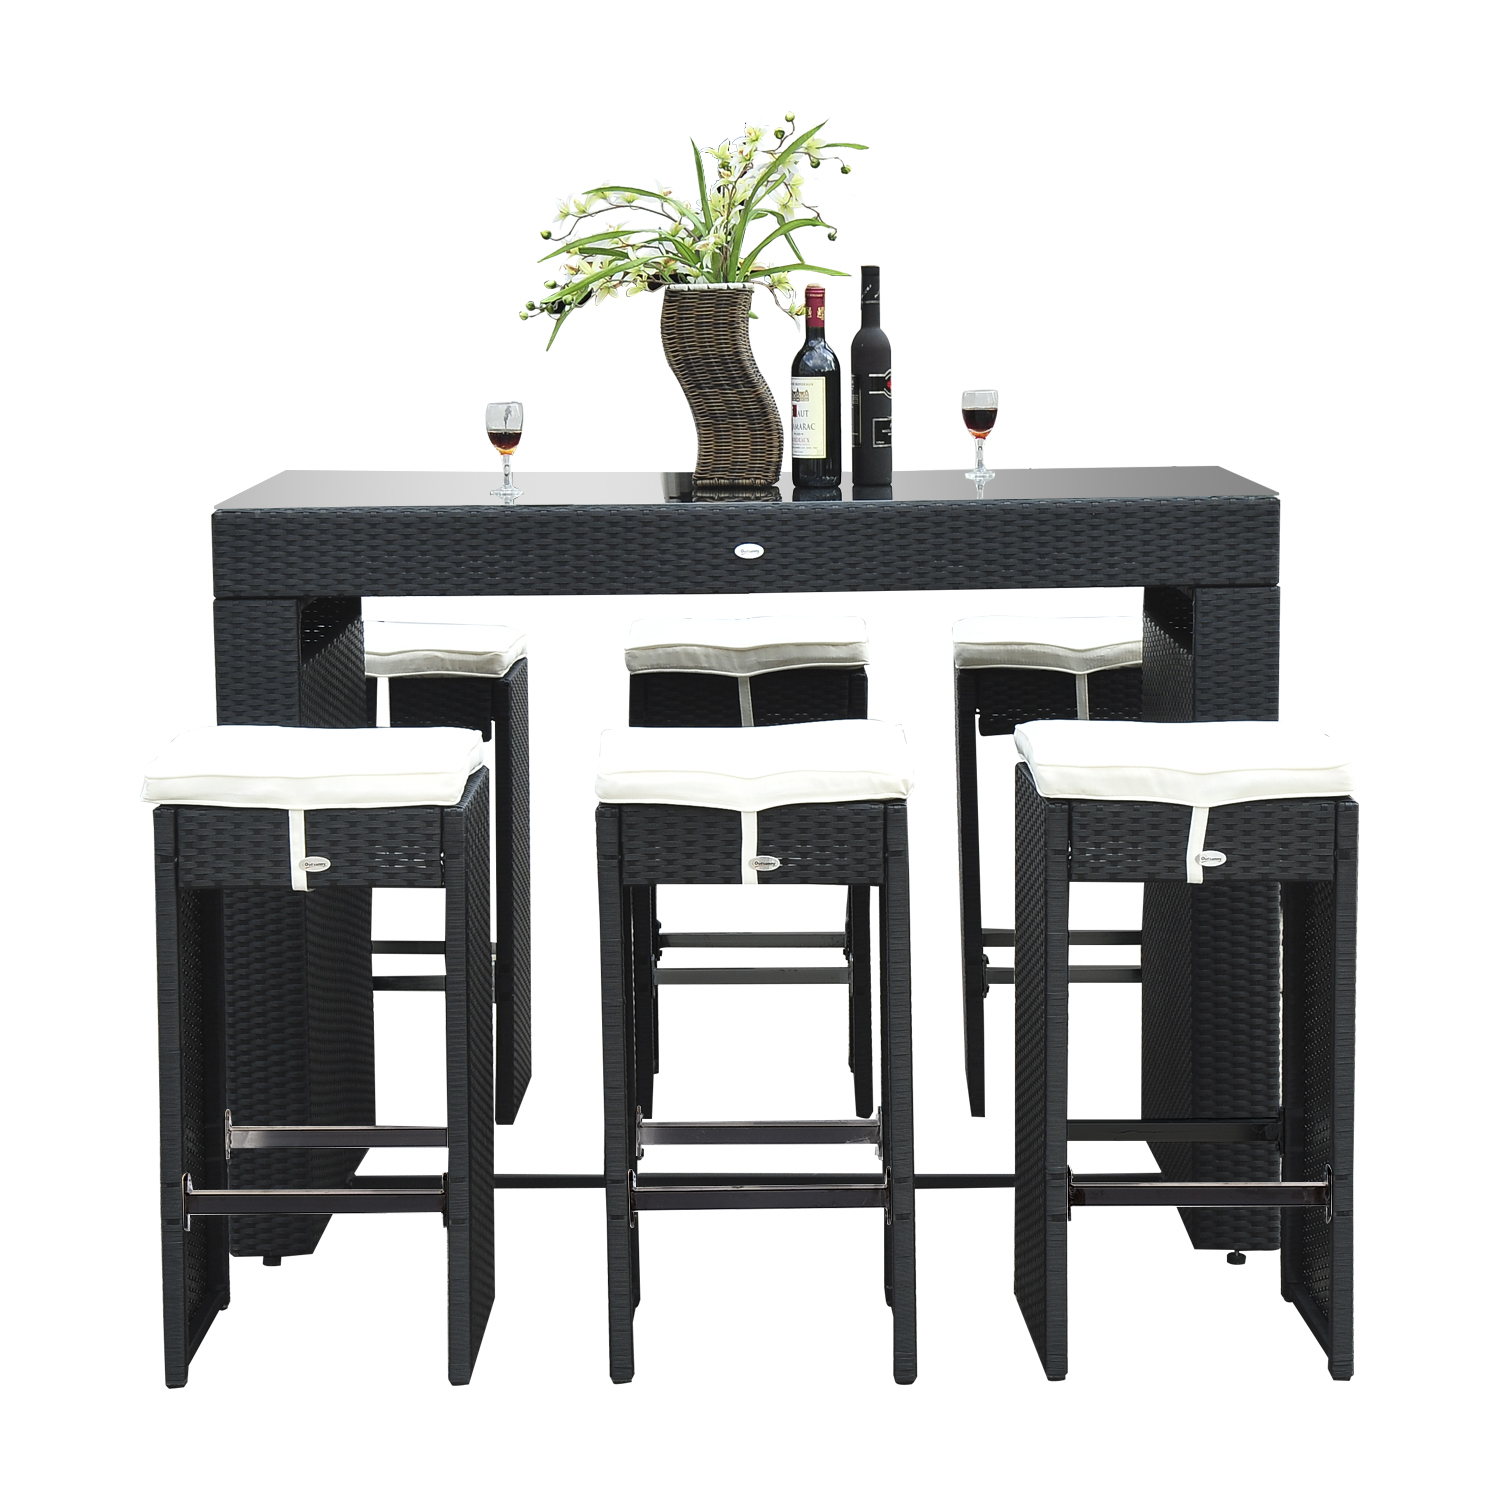 Outsunny 7pc Rattan Wicker Bar Stool Dining Table Set Black